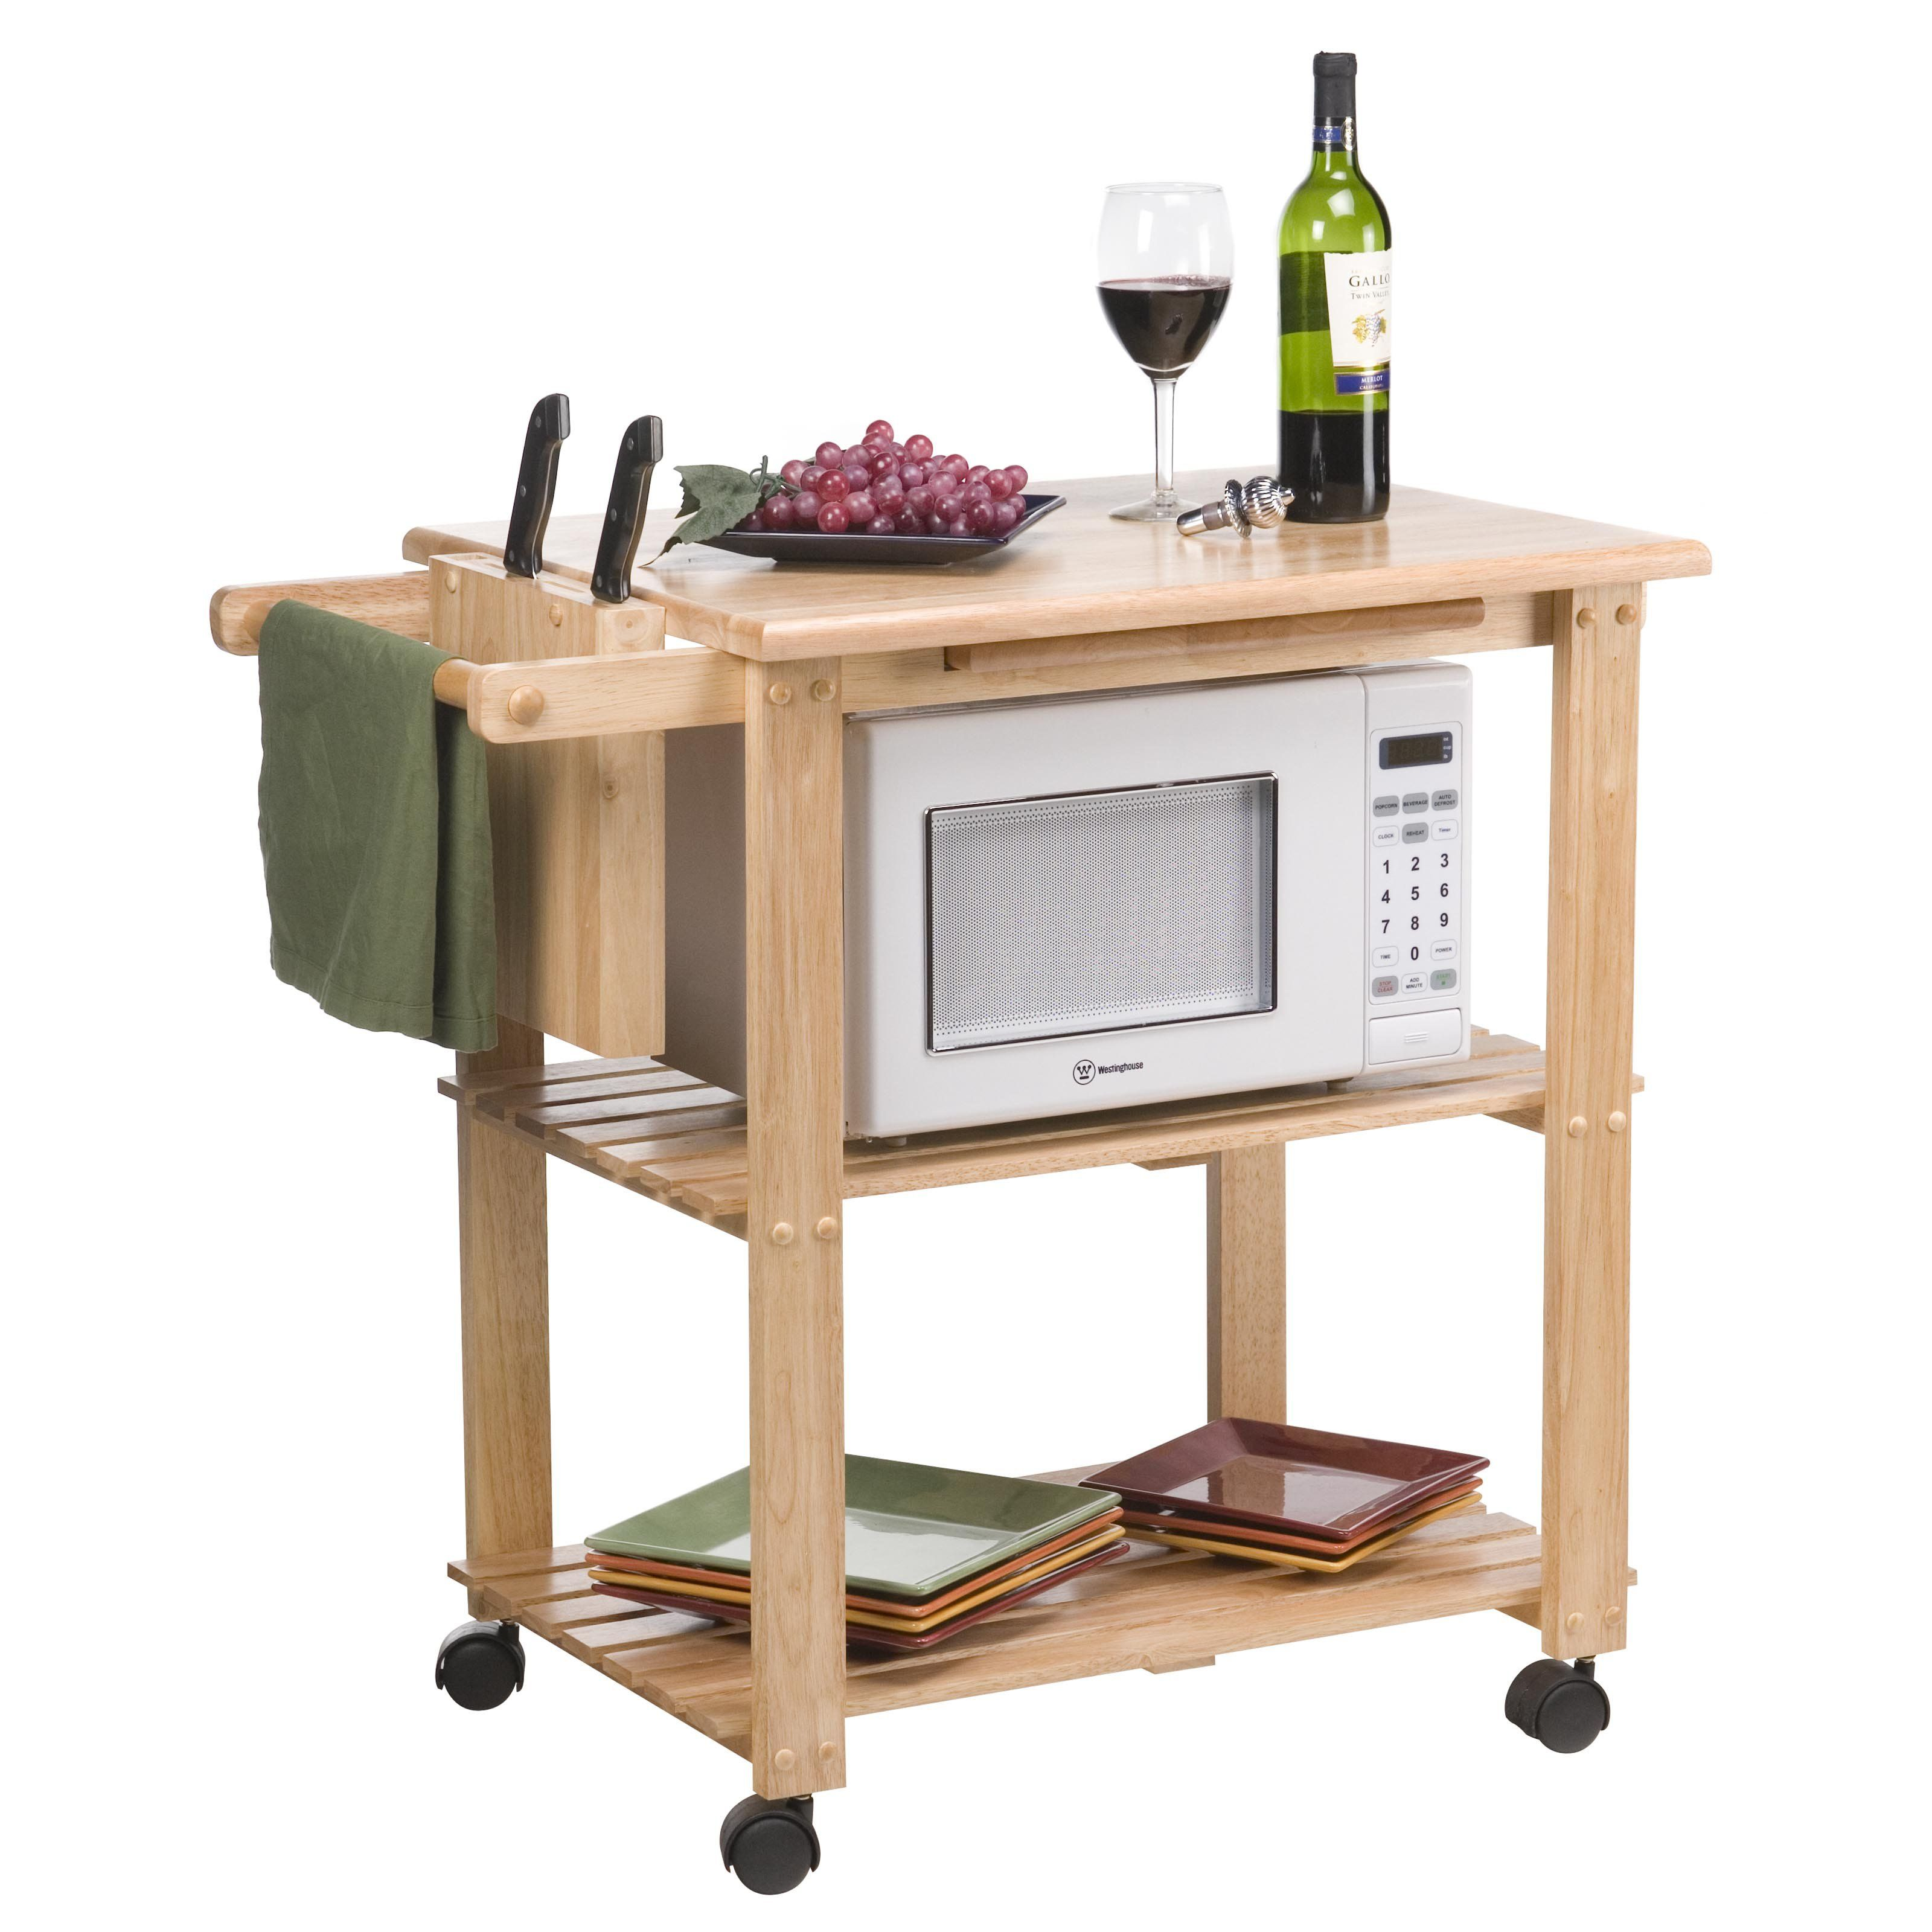 The Stetson Microwave Cart  From Hayneedle  Kitchen Storage Fascinating Small Kitchen Island On Wheels Decorating Inspiration